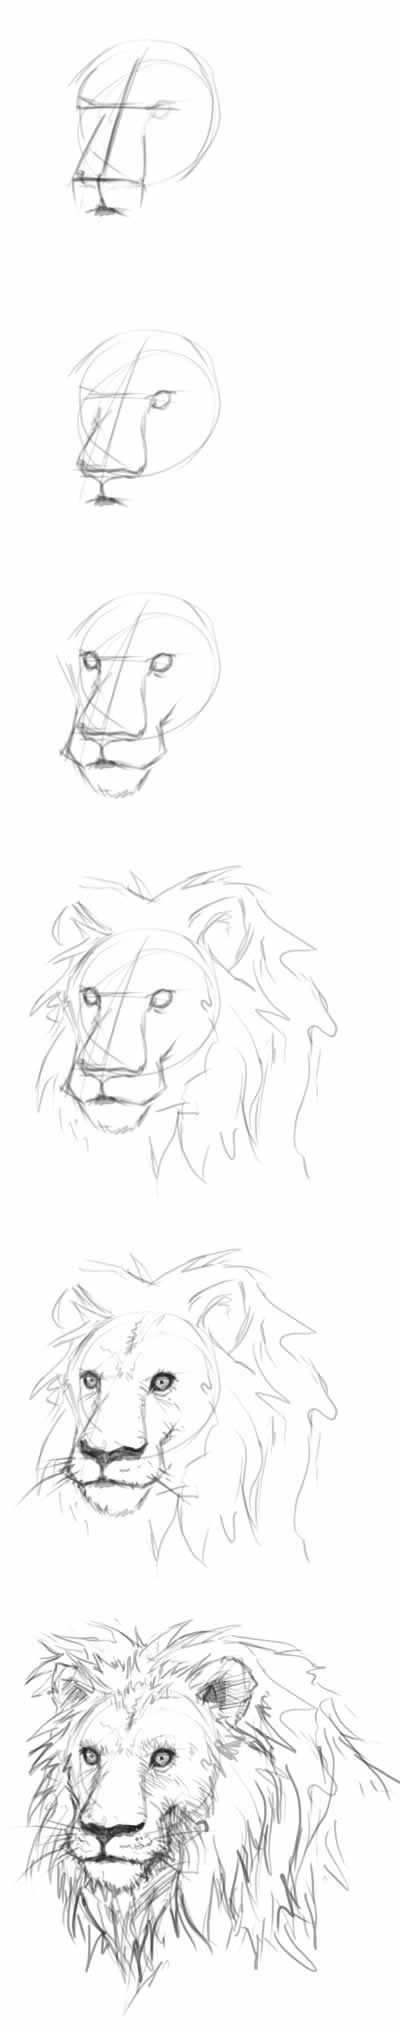 How To Draw A Lion Head Step By Step #drawingtutorial: More